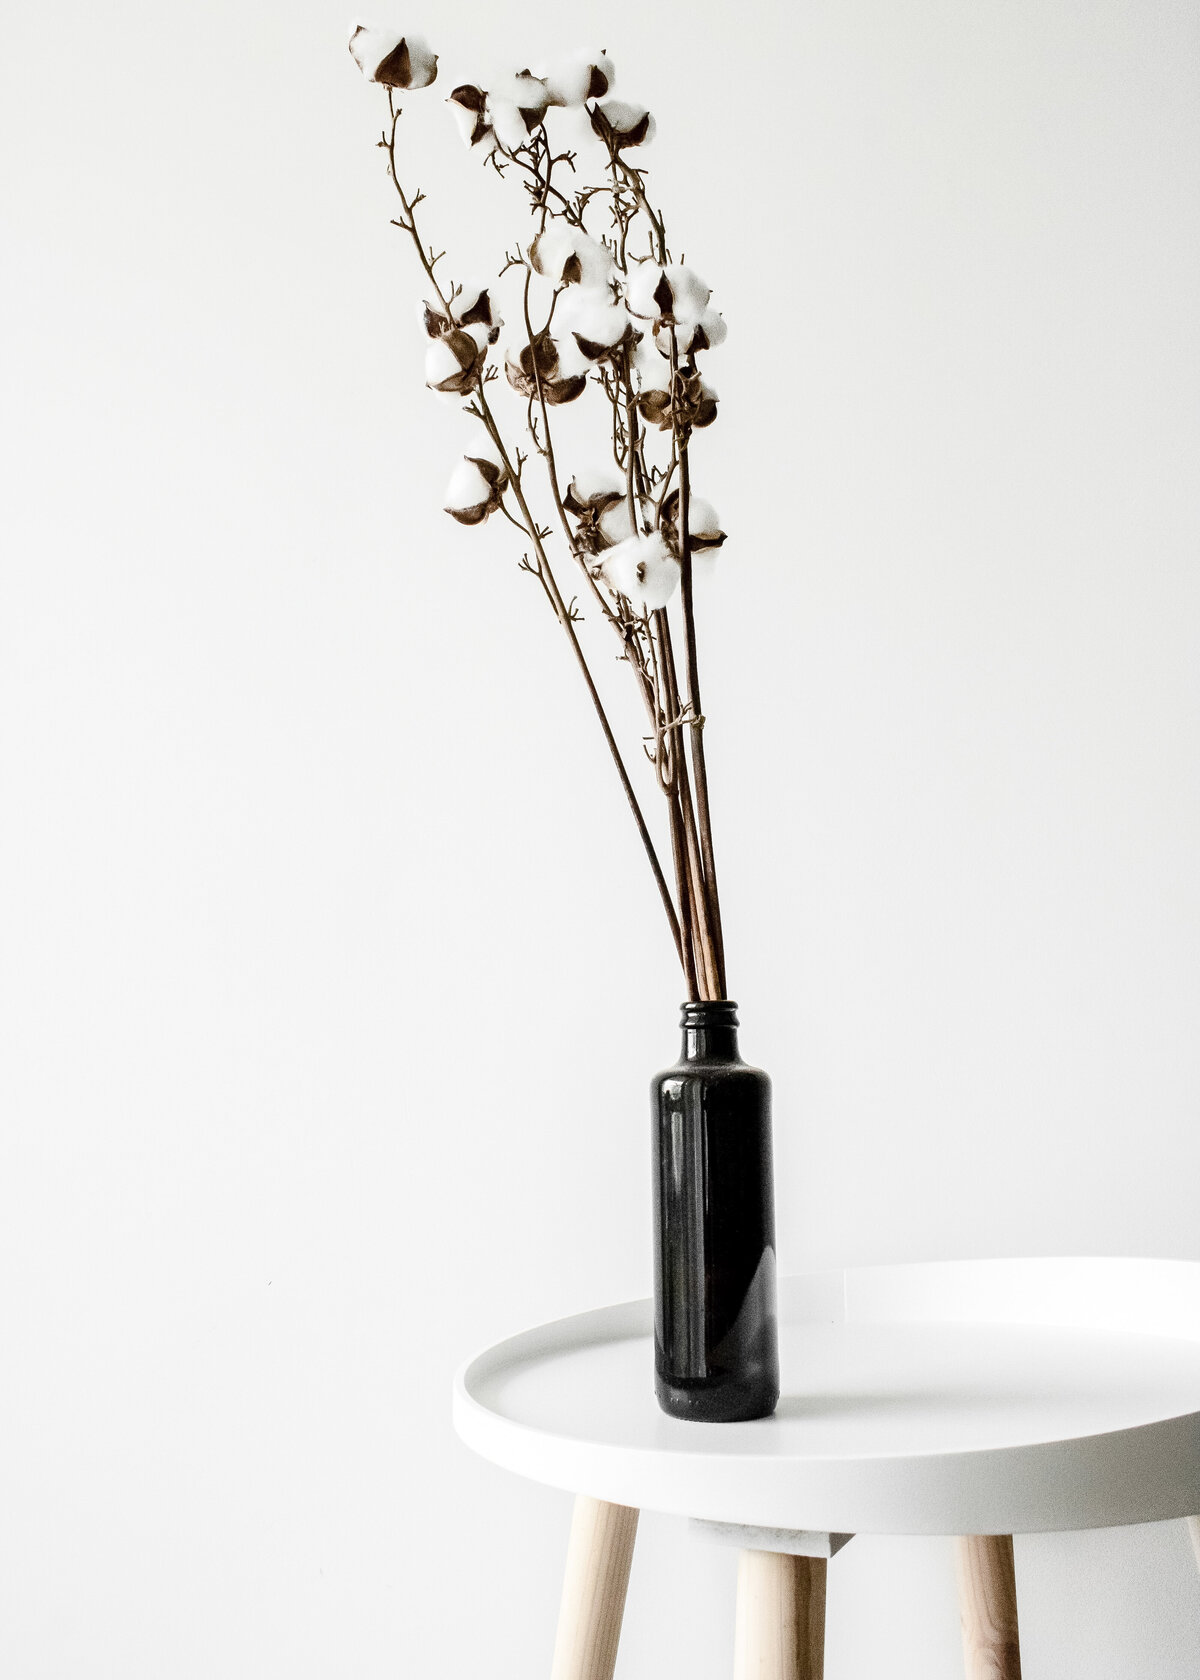 Cotton branches in a black glass vase sit on a minimal white table.